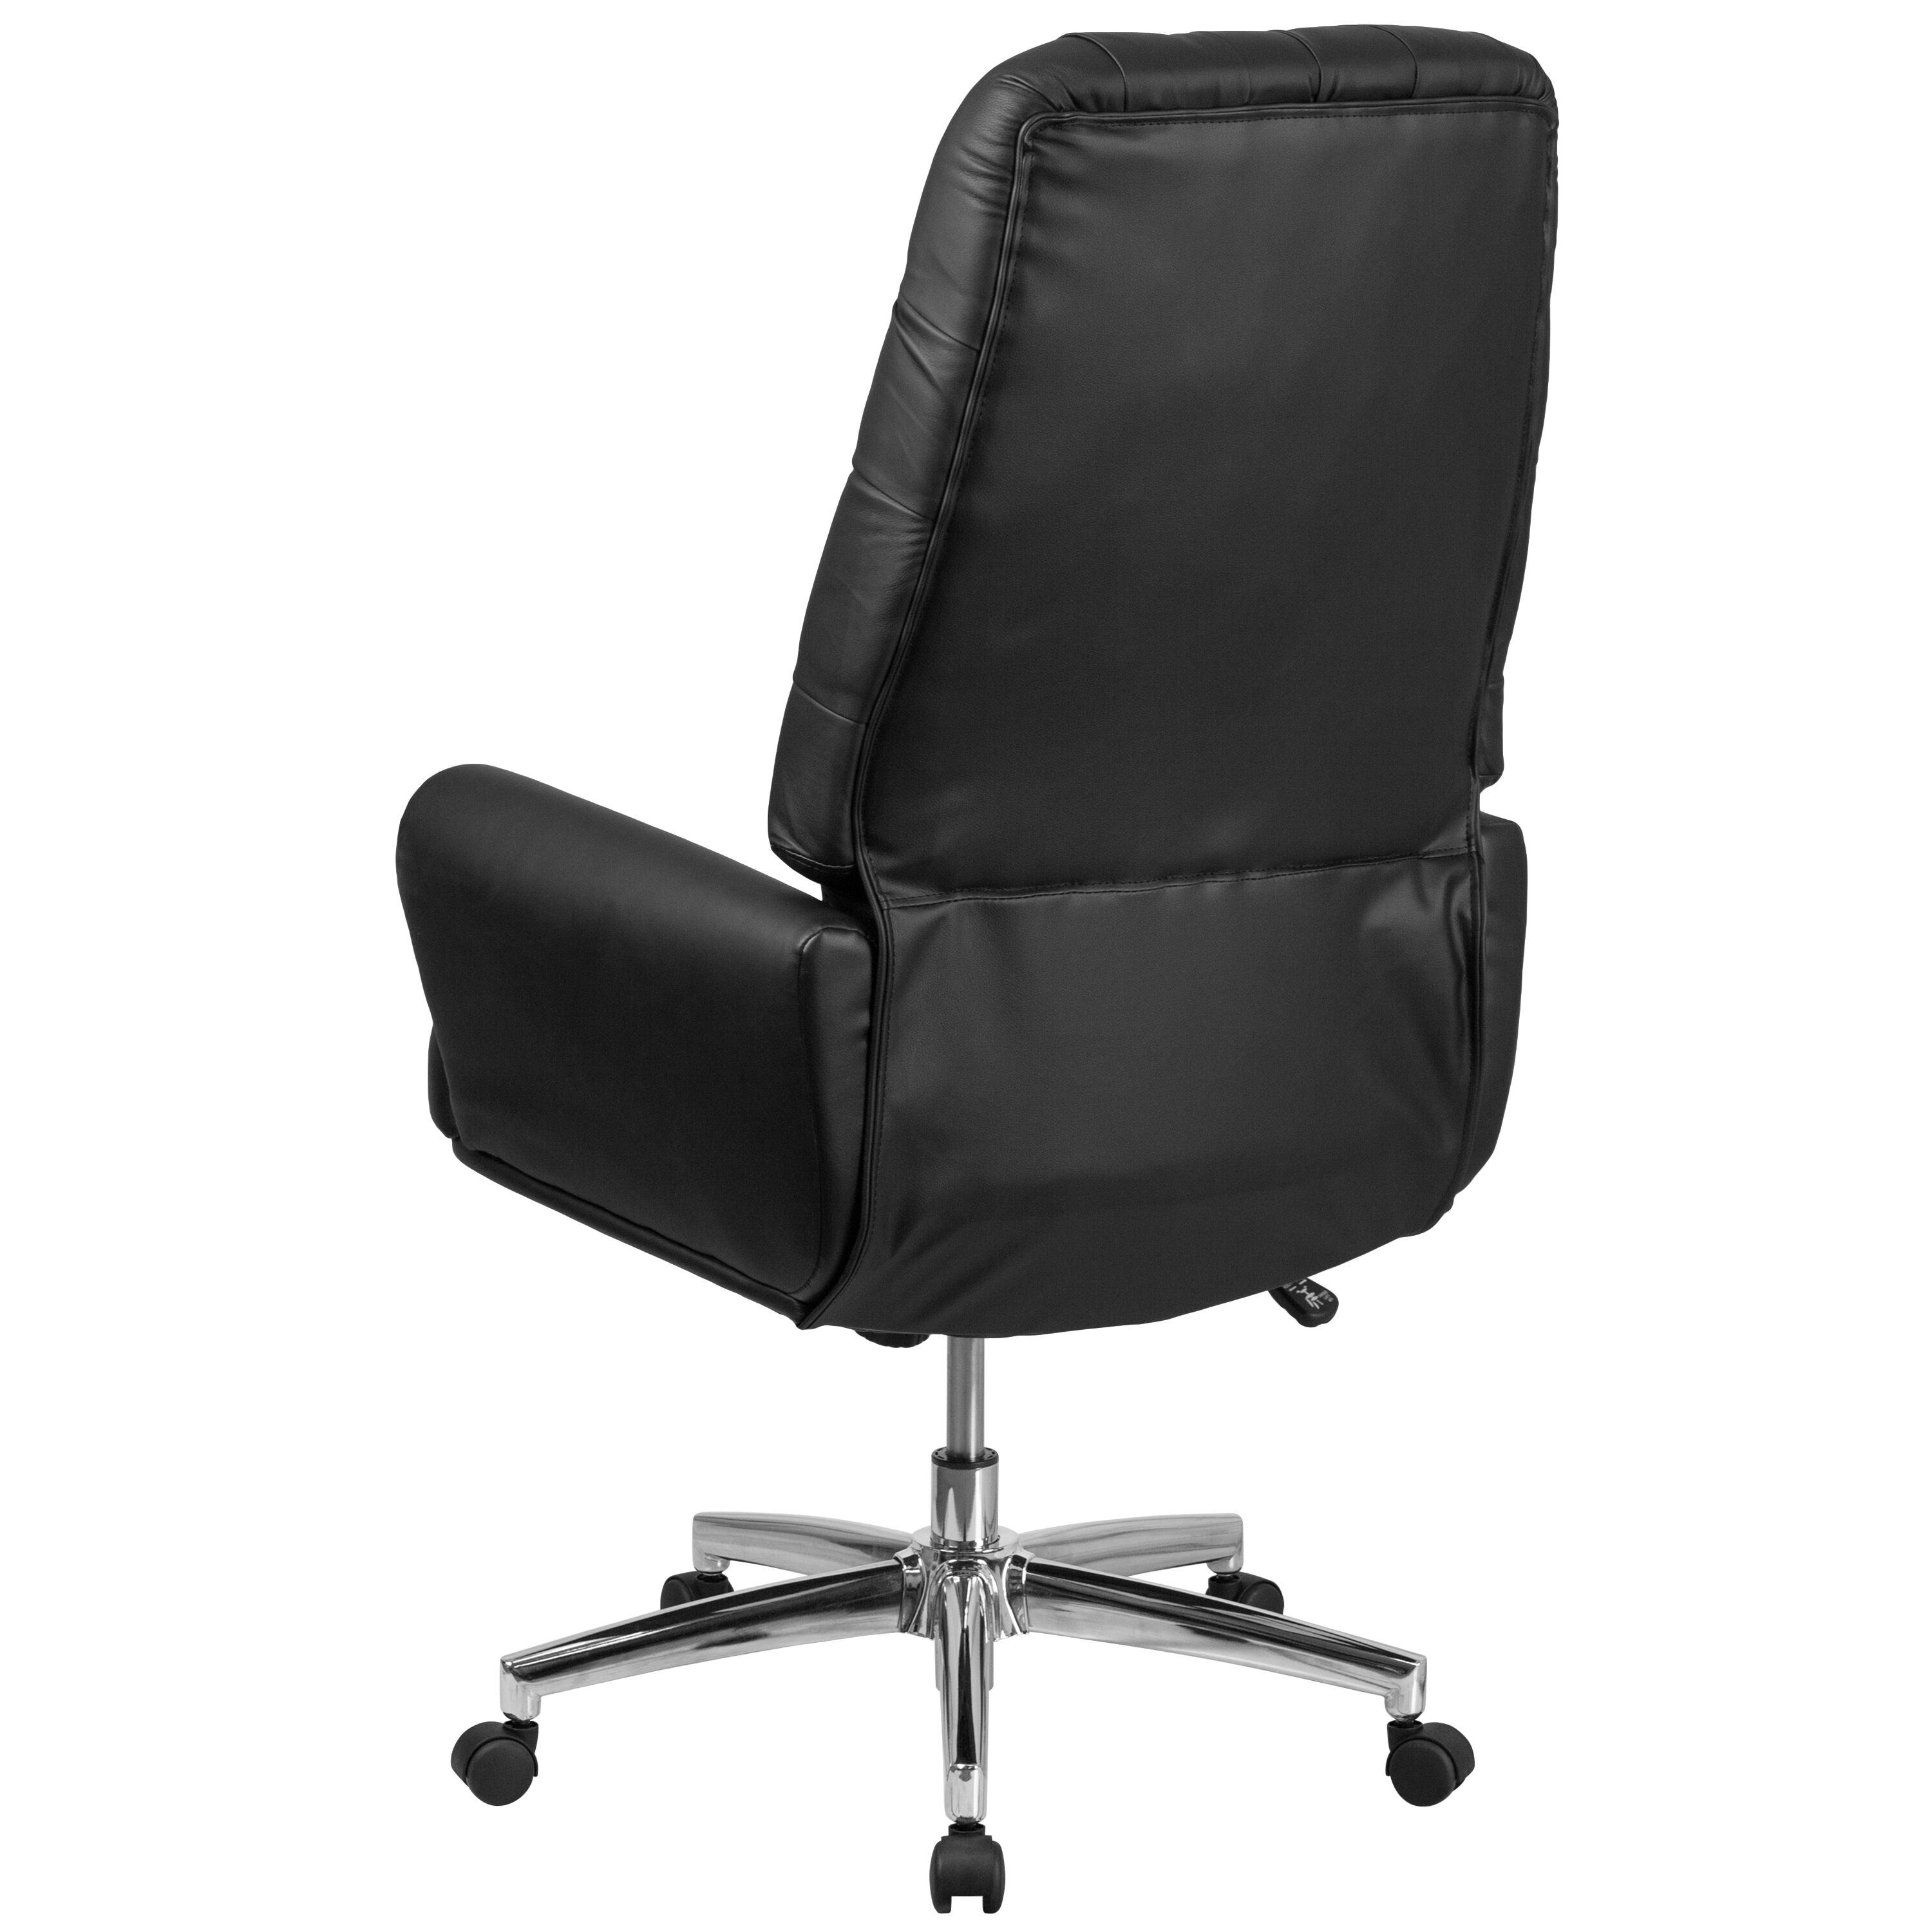 Tufted Leather Office Chair High Back Traditional Tufted Black Leather Executive Swivel Office Chair With Silver Welt Arms